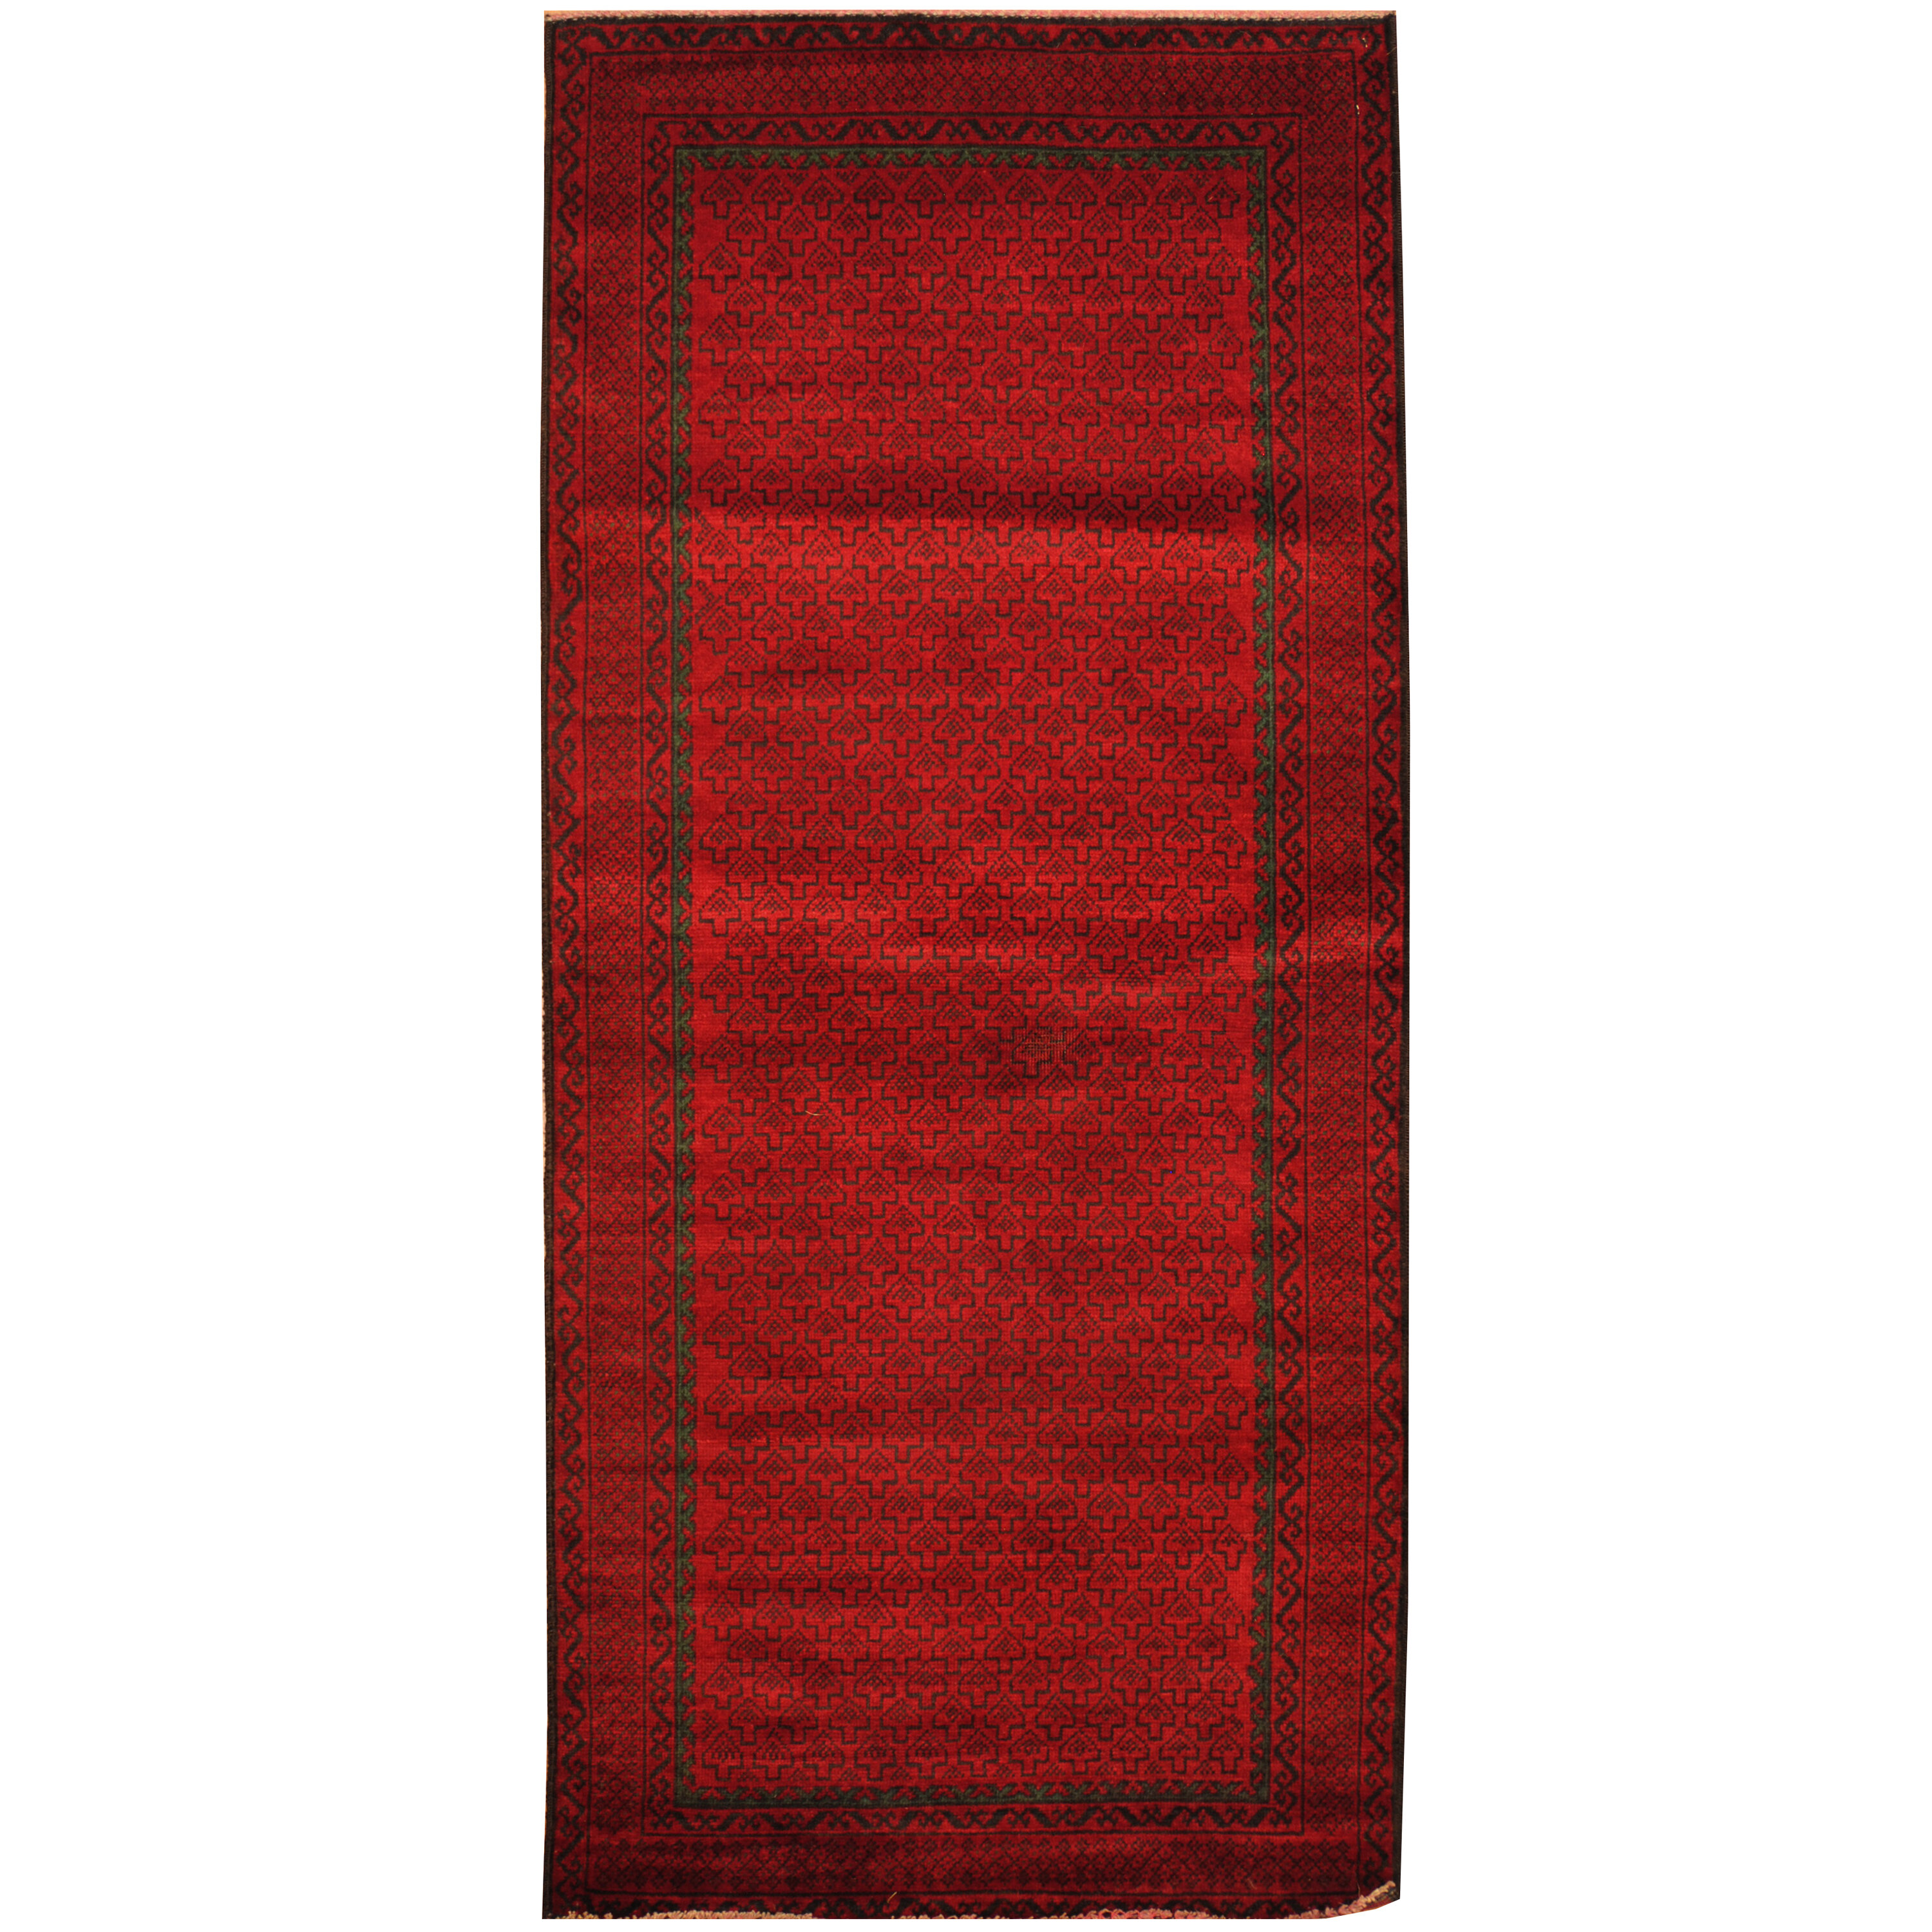 Isabelline One Of A Kind Prentice Hand Knotted Red 2 8 X 6 2 Runner Wool Area Rug Wayfair